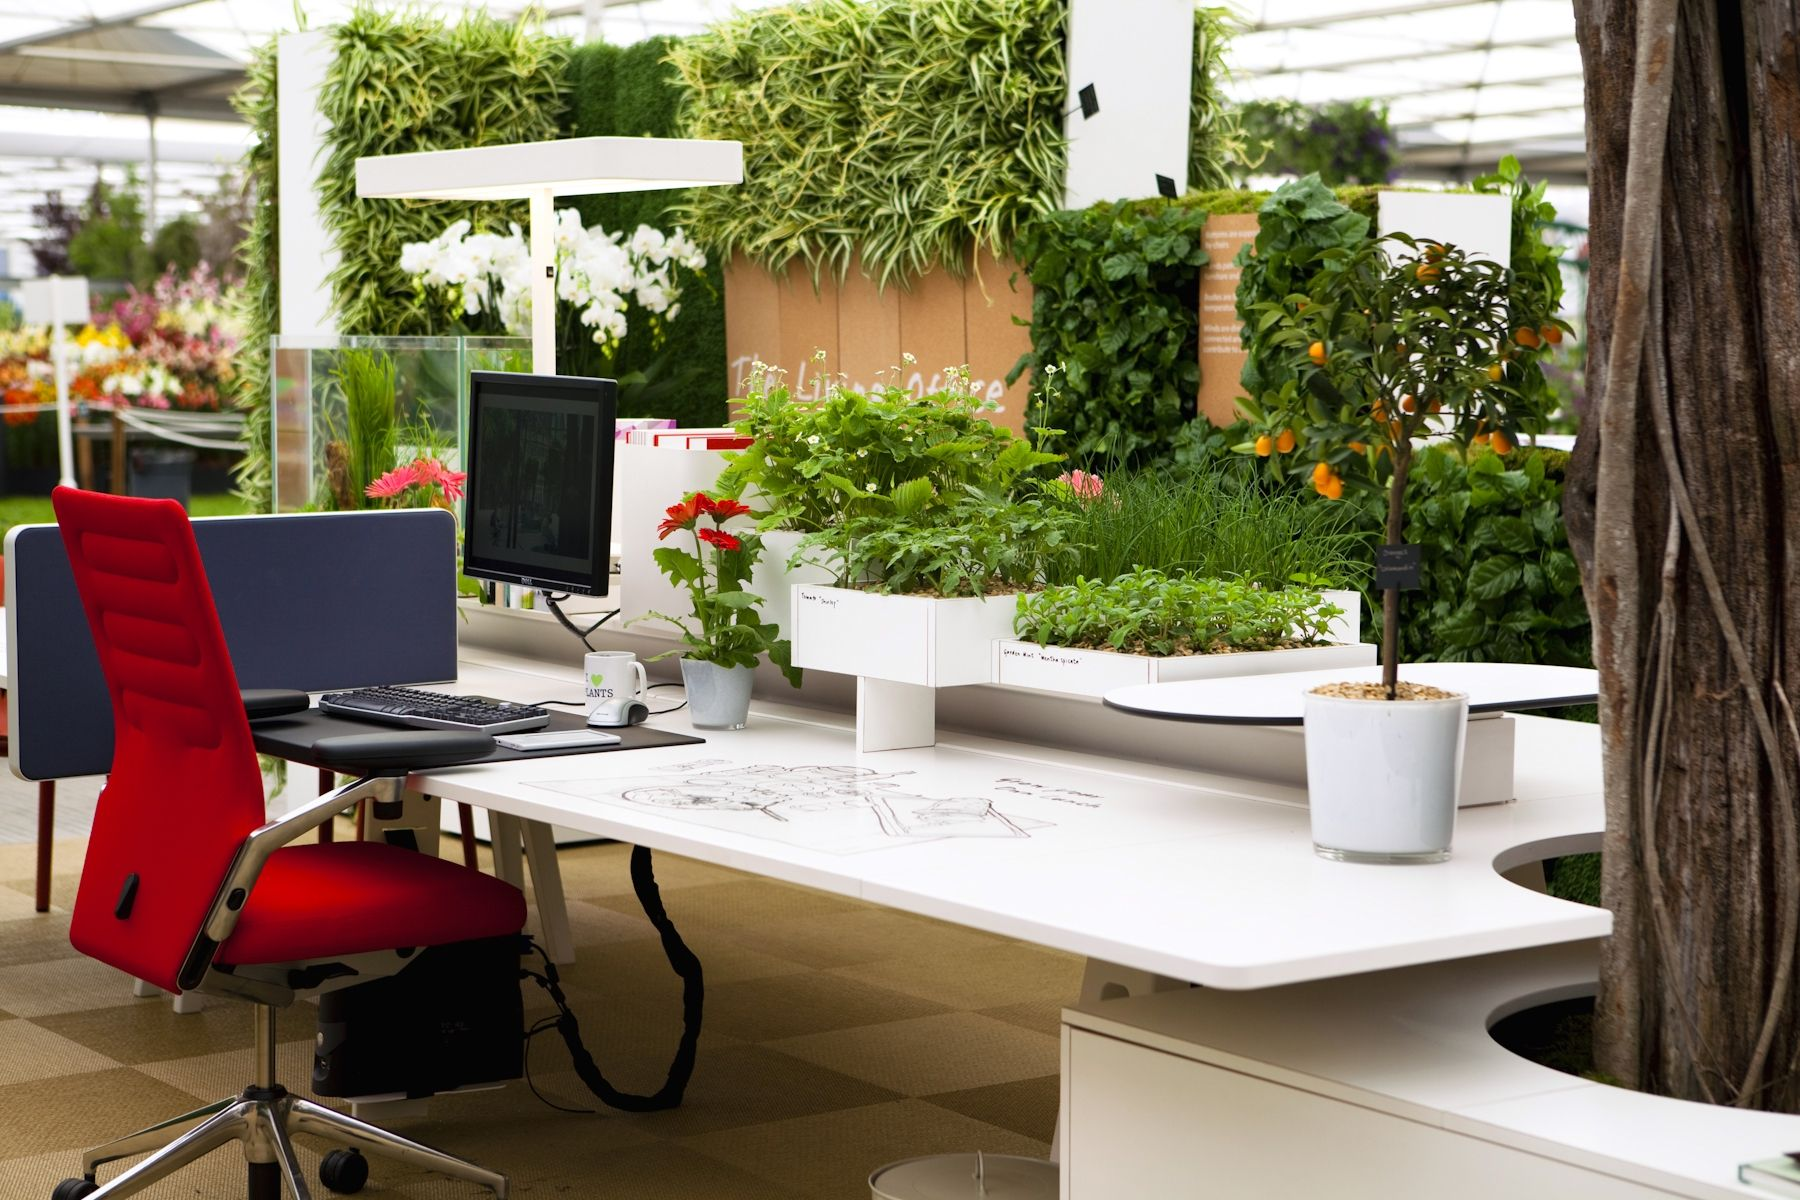 1000 Images About Office Plants On Pinterest  Plants Spaces And Productivity  E